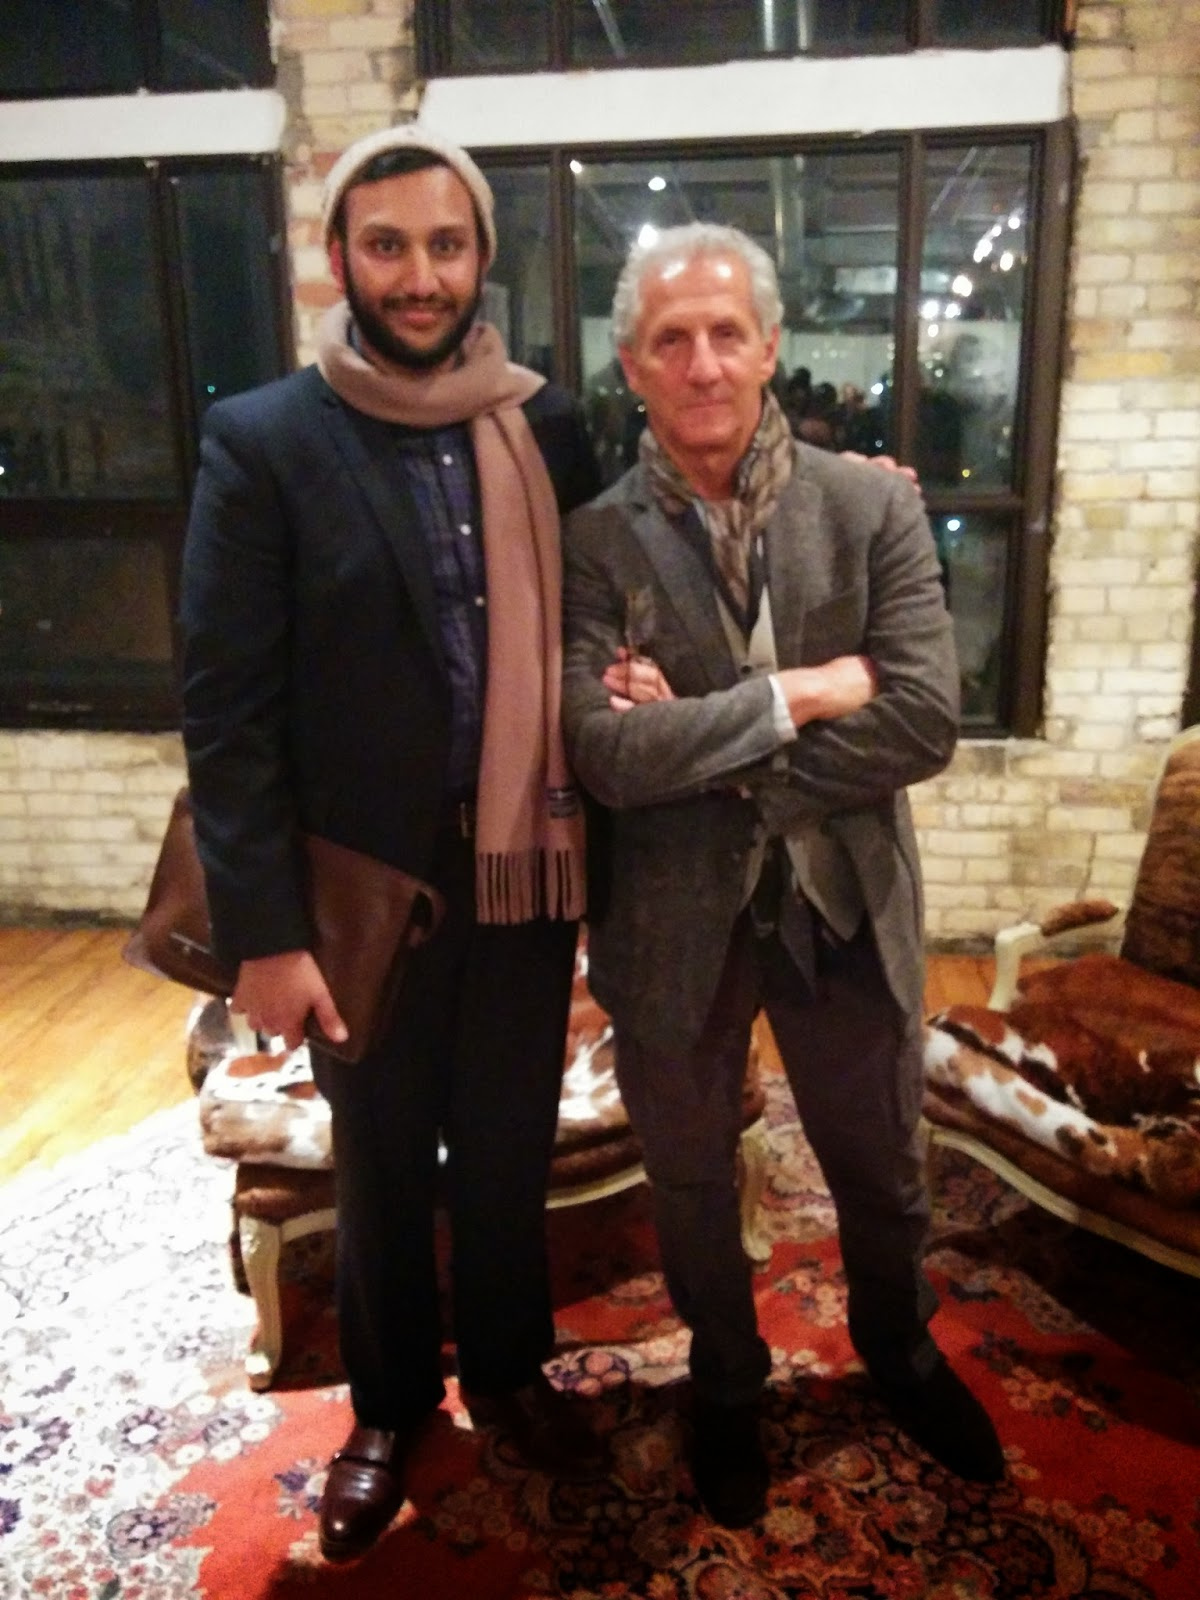 Brands To Love Joseph Abboud Fall Winter 2014 At Moore S Clothing For Men The Prep Guy Tpgstyle Com Canada S Leading Men S Fashion Style Blog By Syed Sohail Based Out Of Toronto